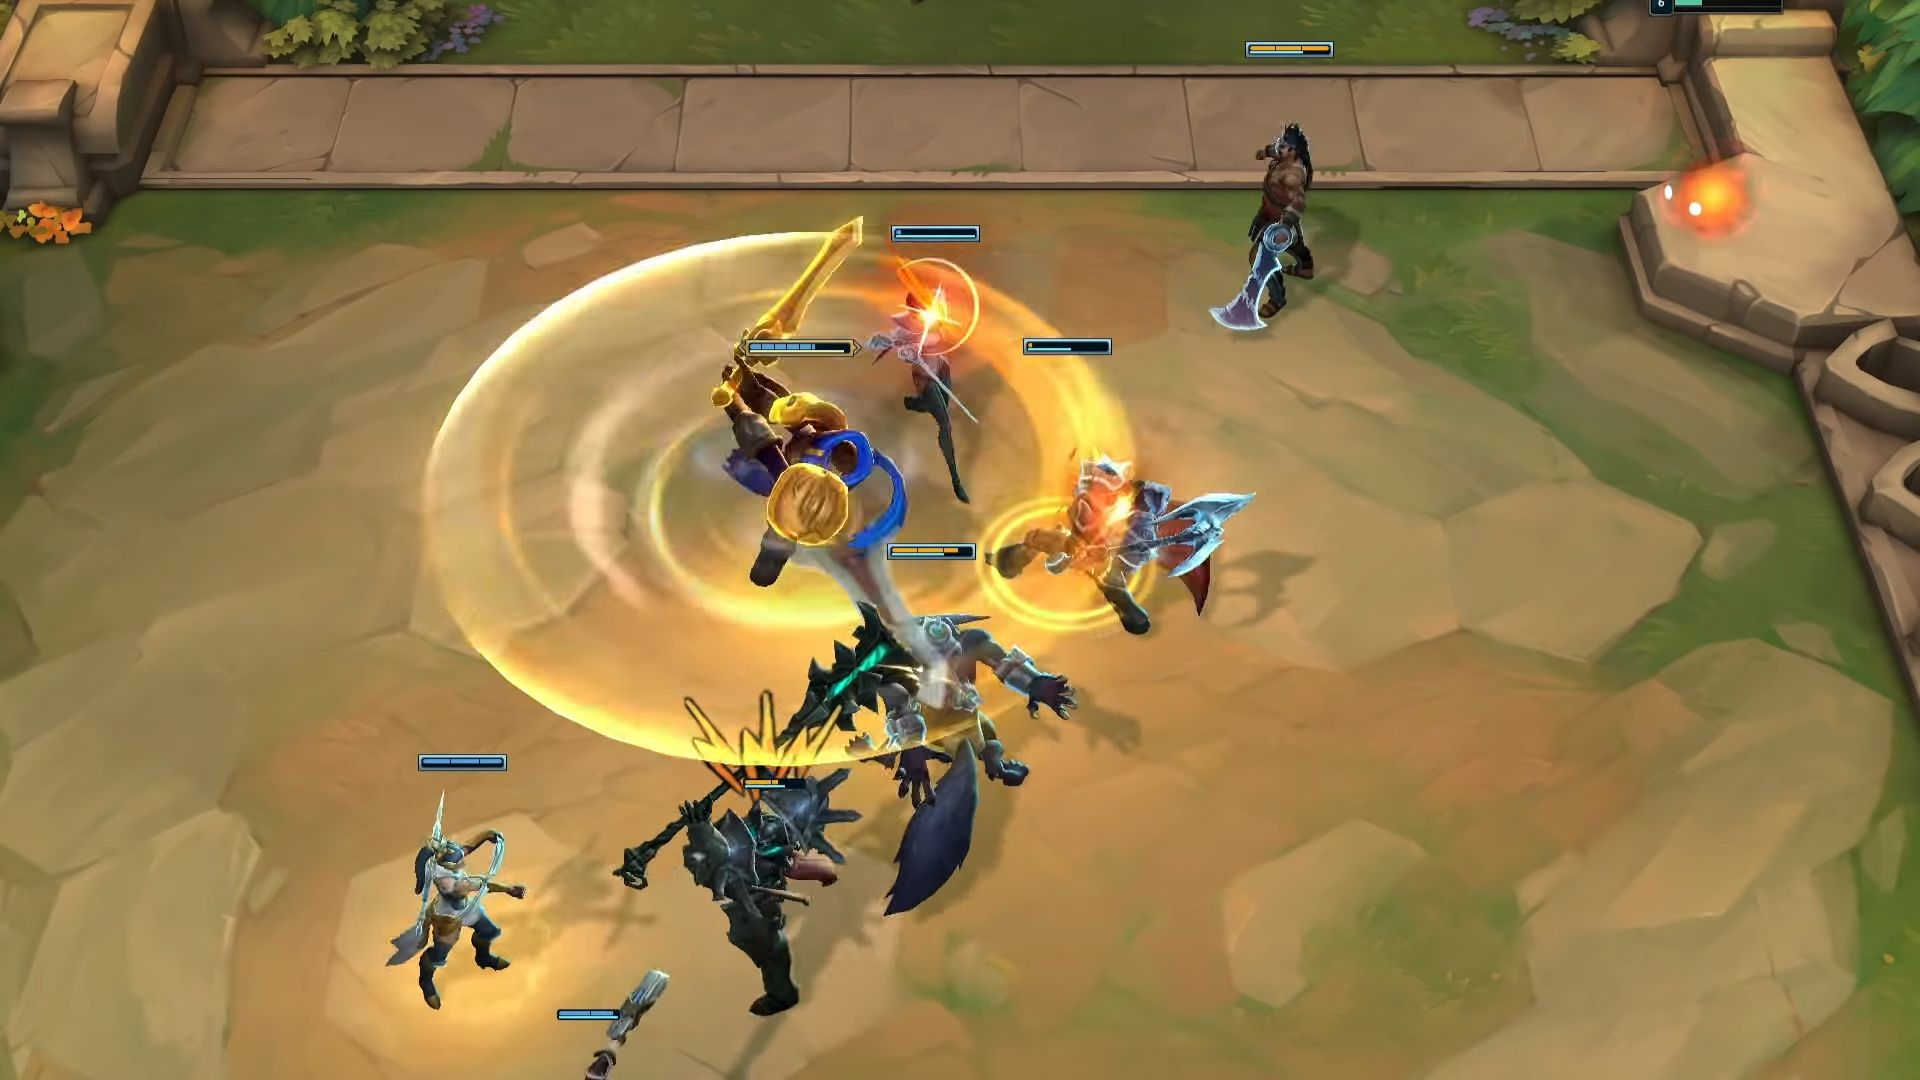 TFT: Teamfight Tactics captura de tela 1